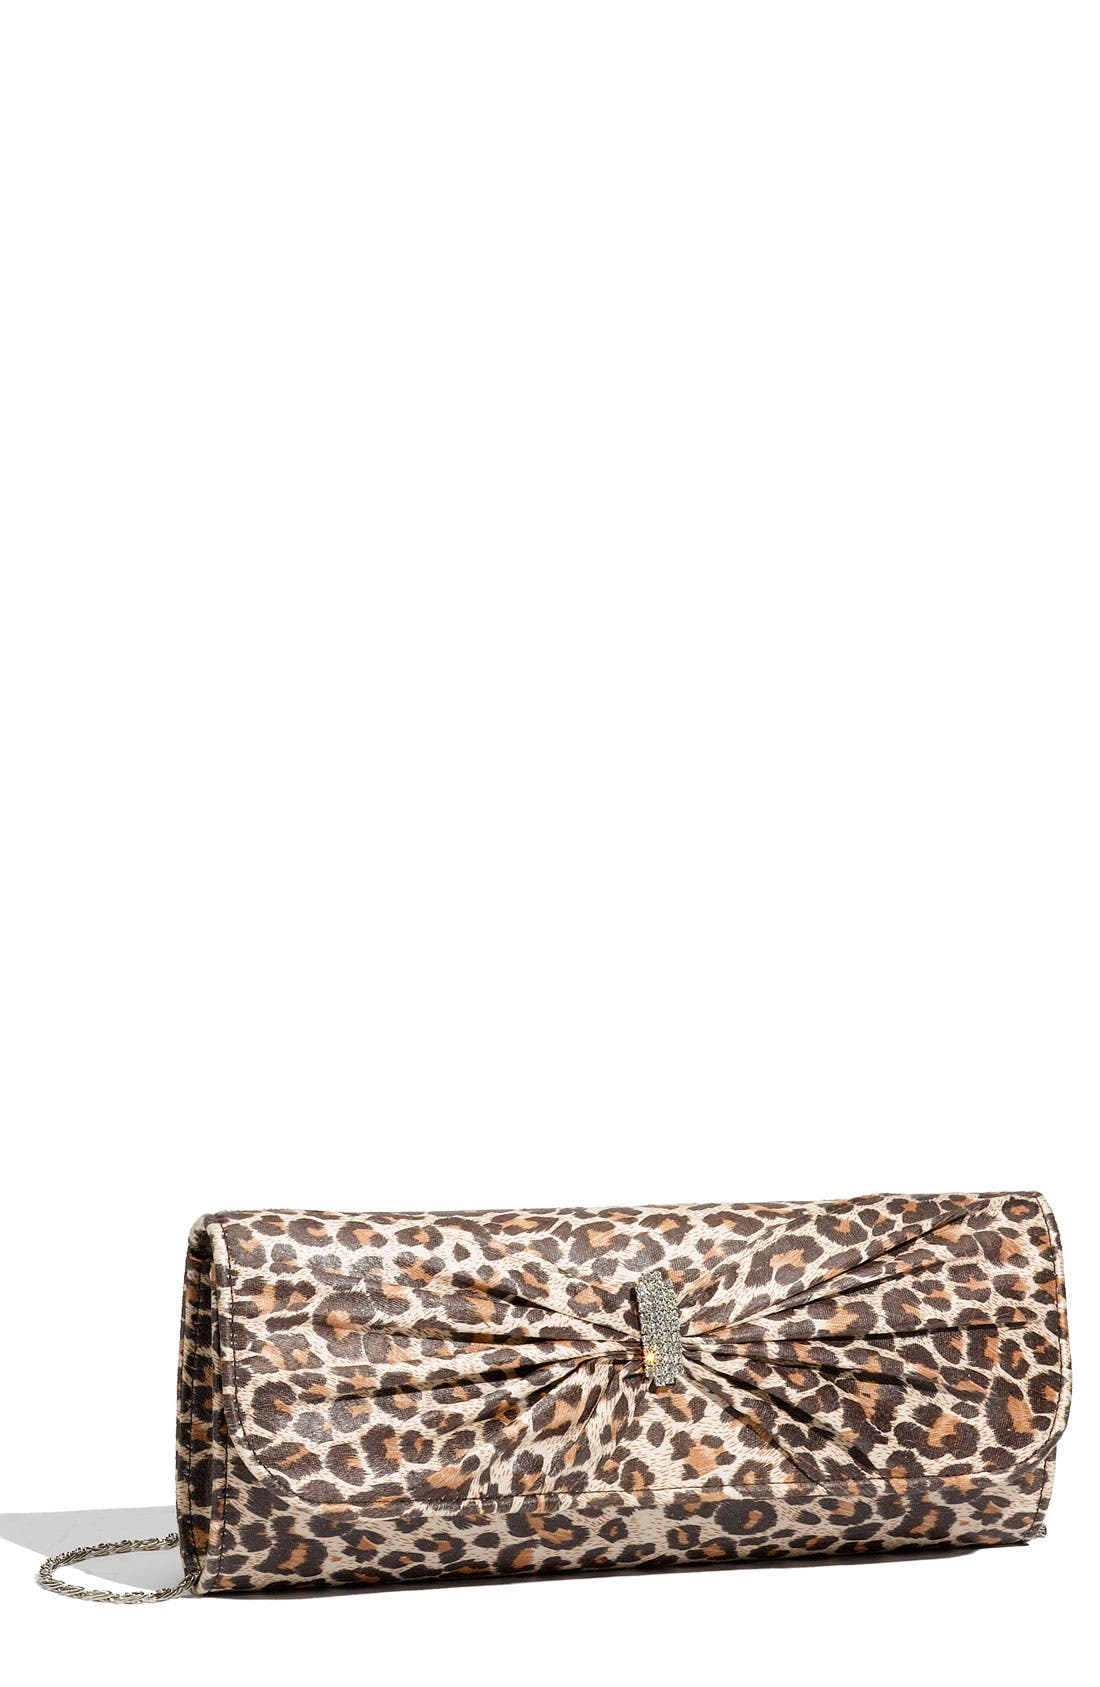 Alternate Image 1 Selected - Top Choice Leopard Print Embellished Bow Clutch